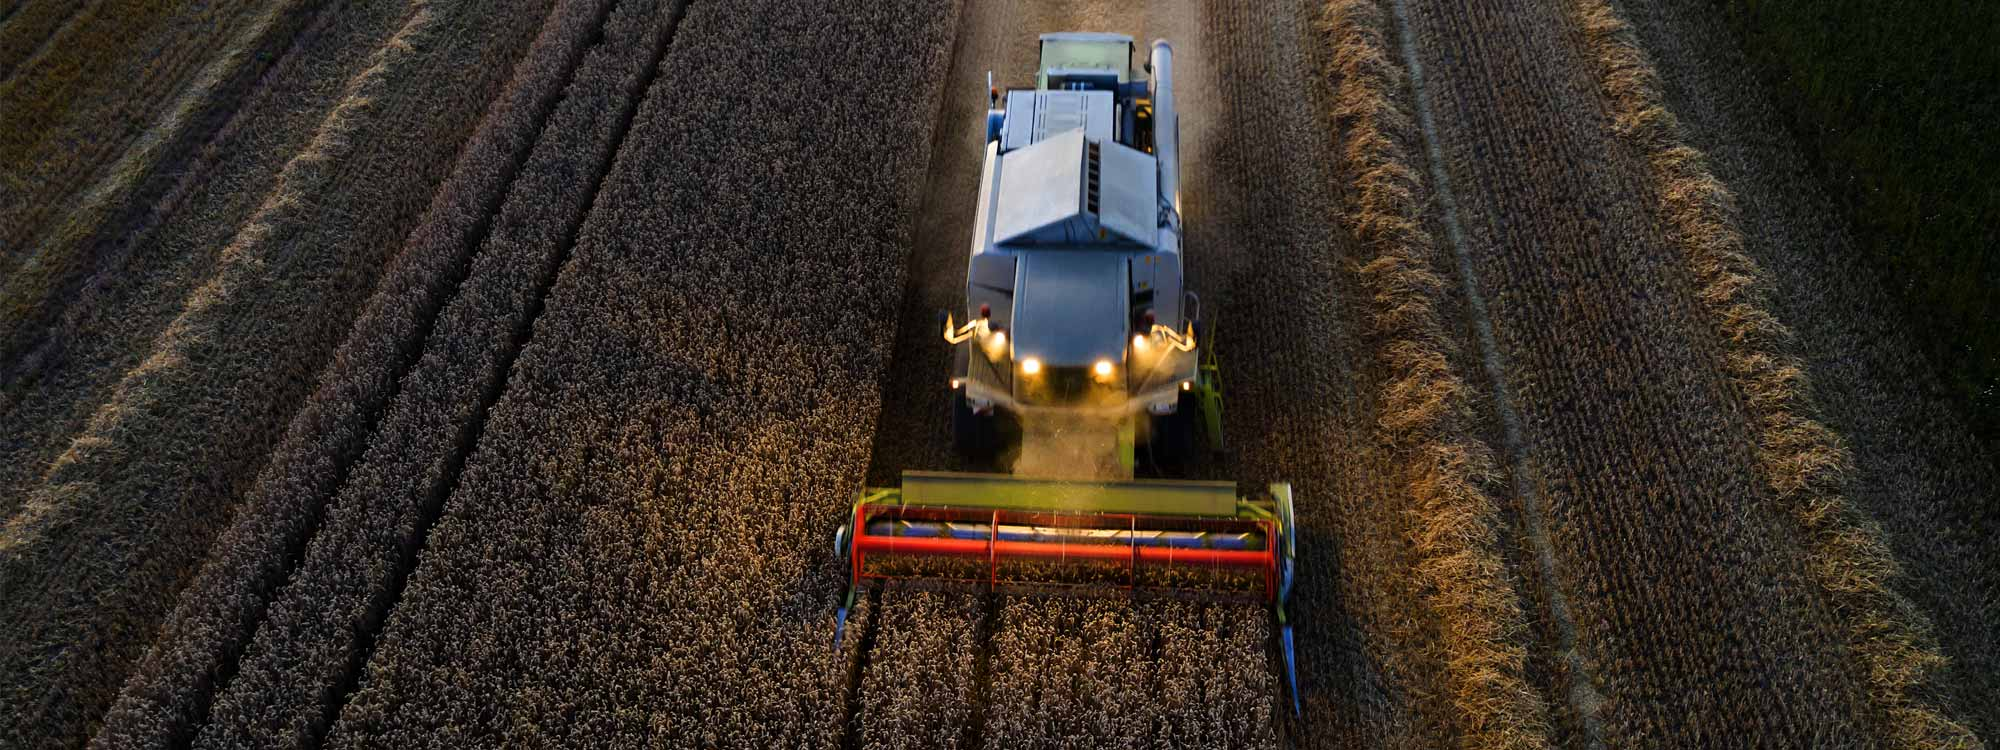 Challenges for Agriculture Equipment: The Value of Self-Lubricating Components